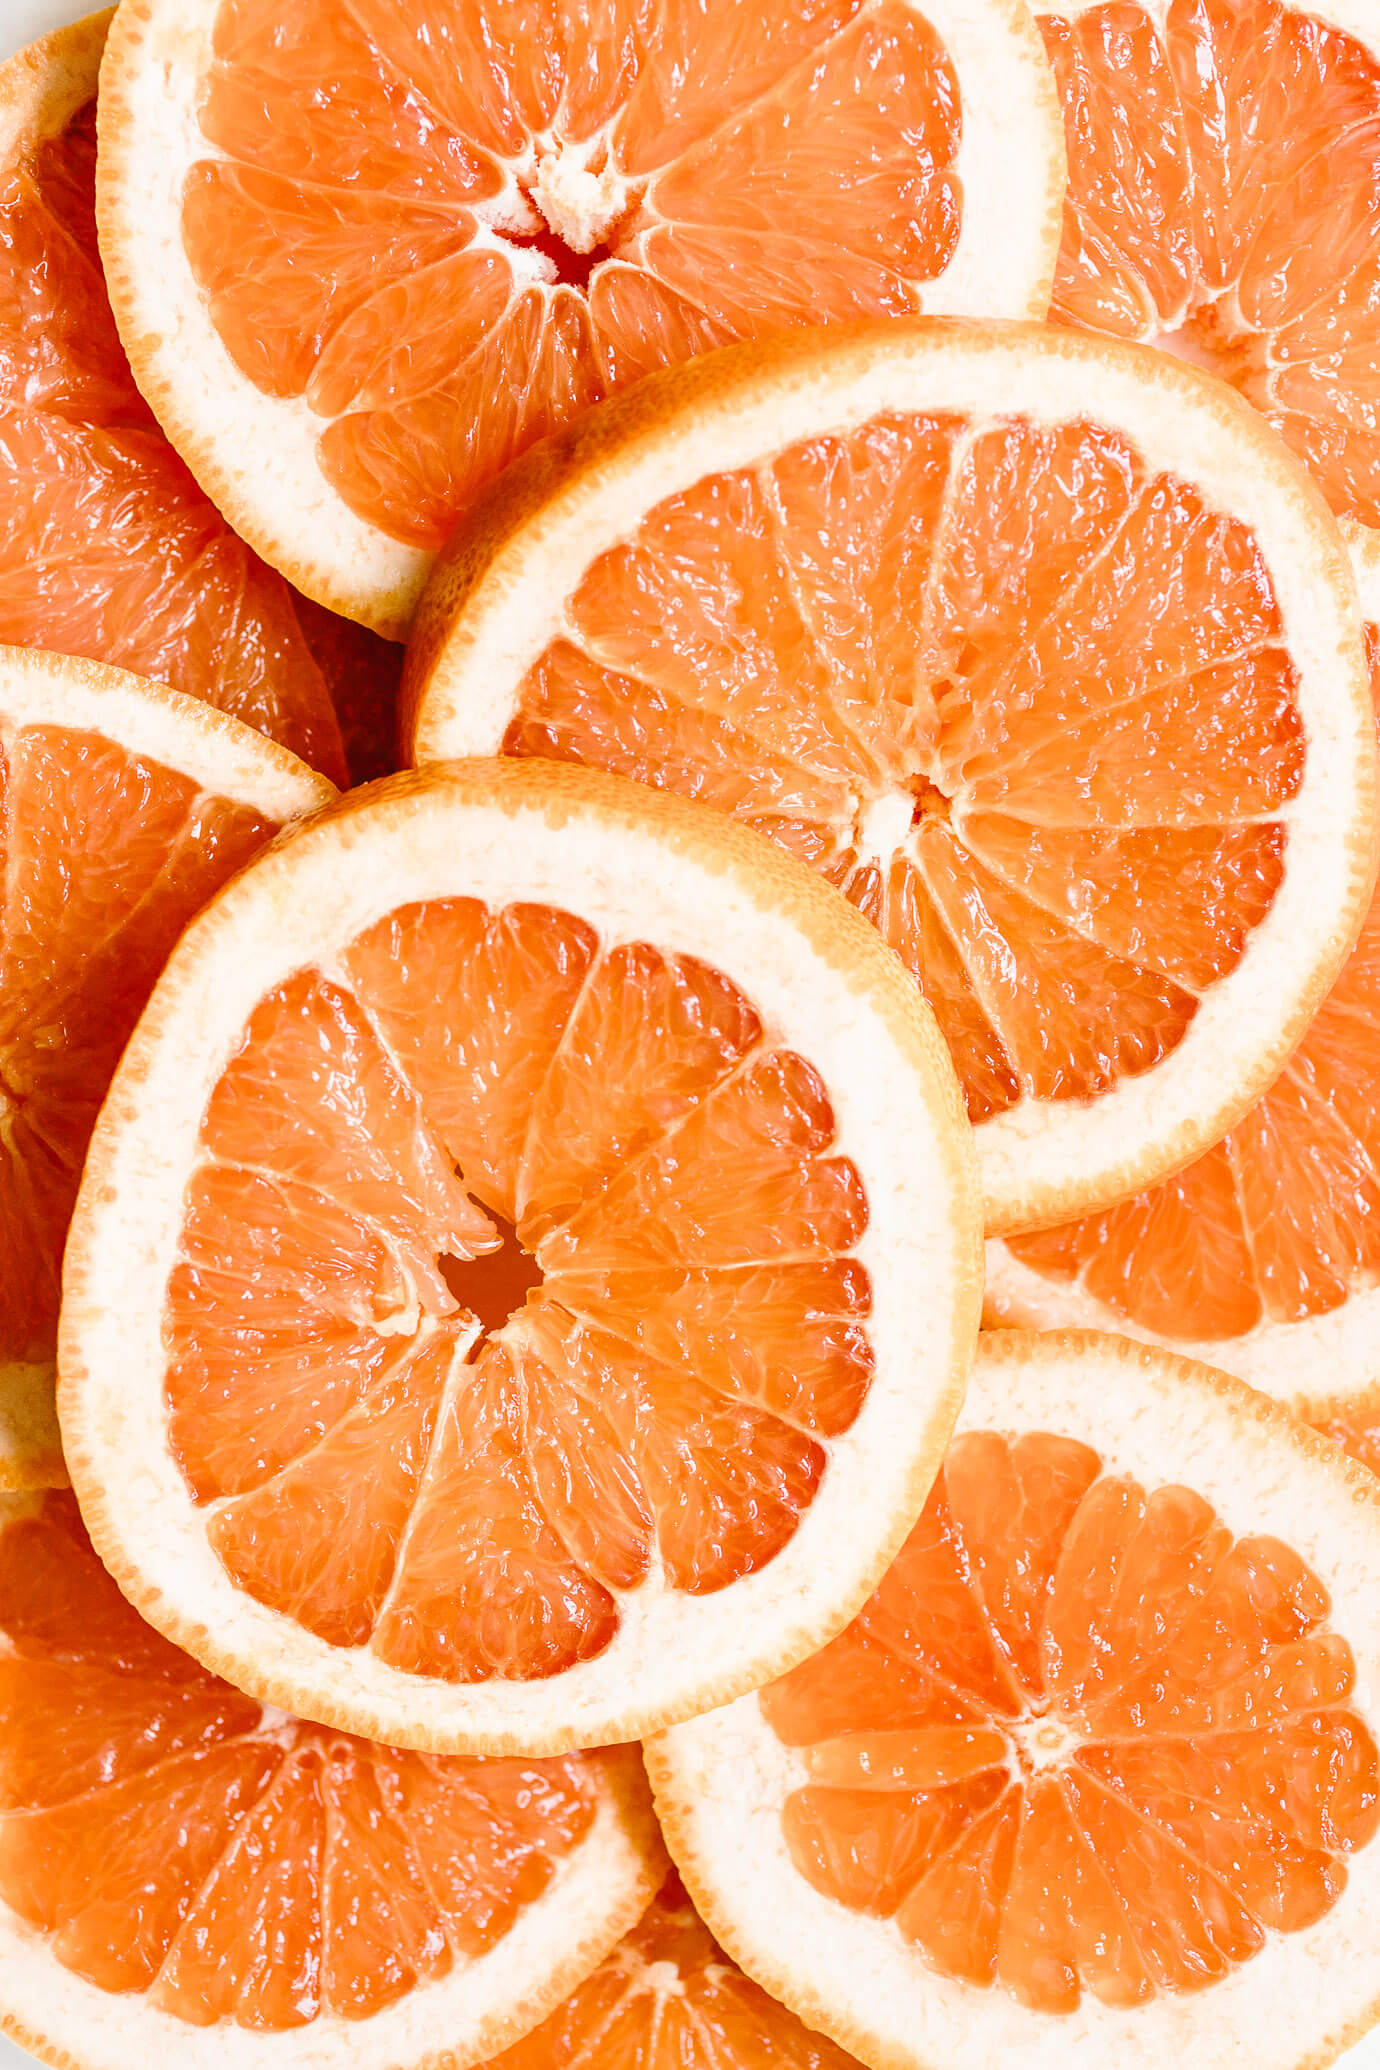 vitamin C boosts collagen